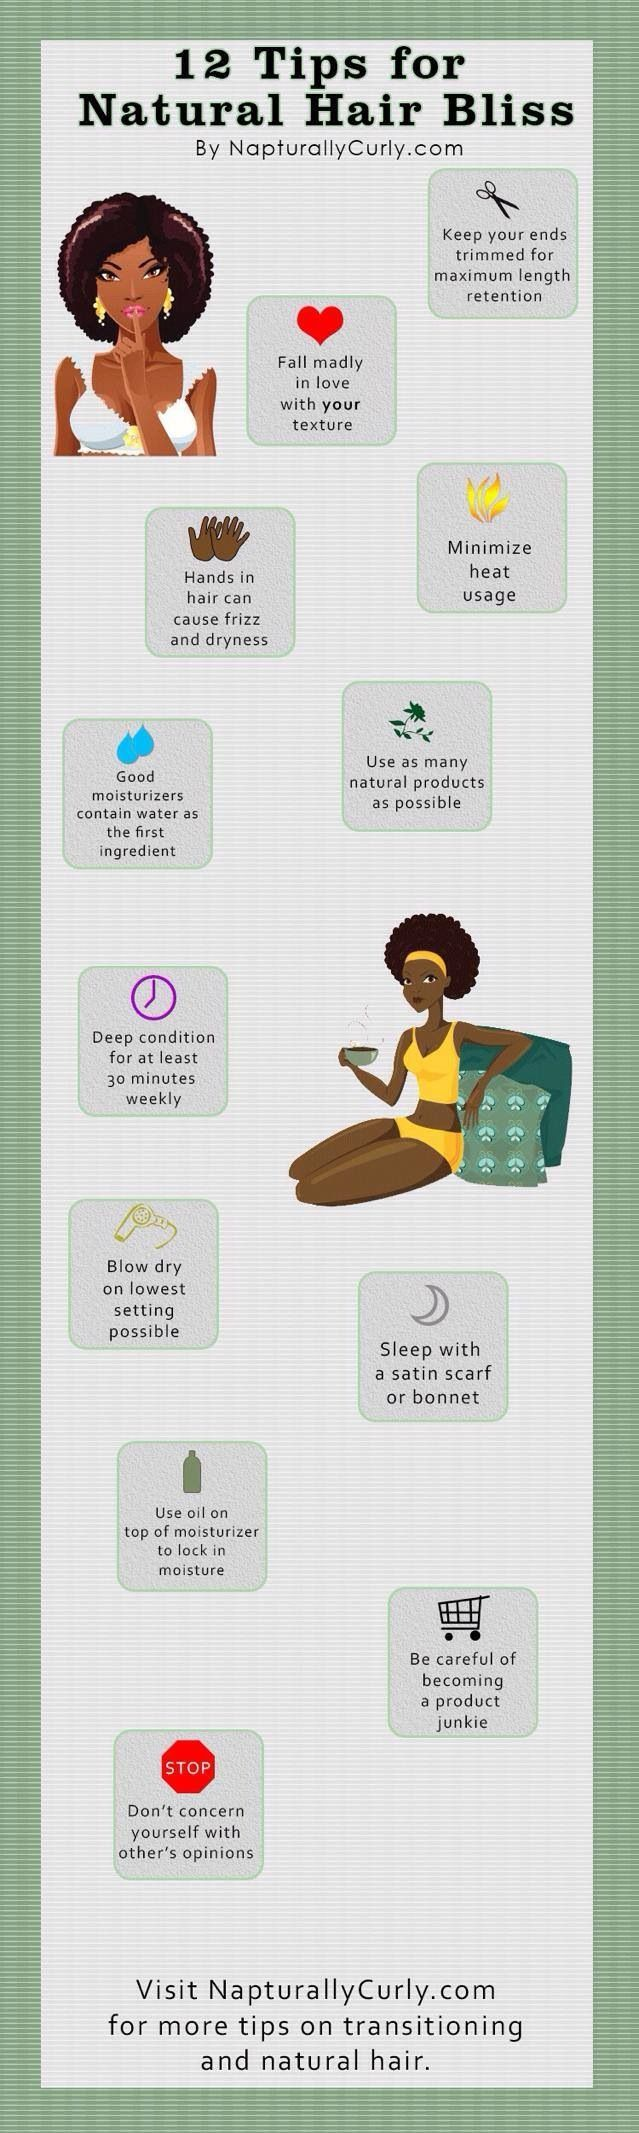 nice infographic of natural hair care tips http://www.fashioncentral.pk/beauty-style/hair-care/